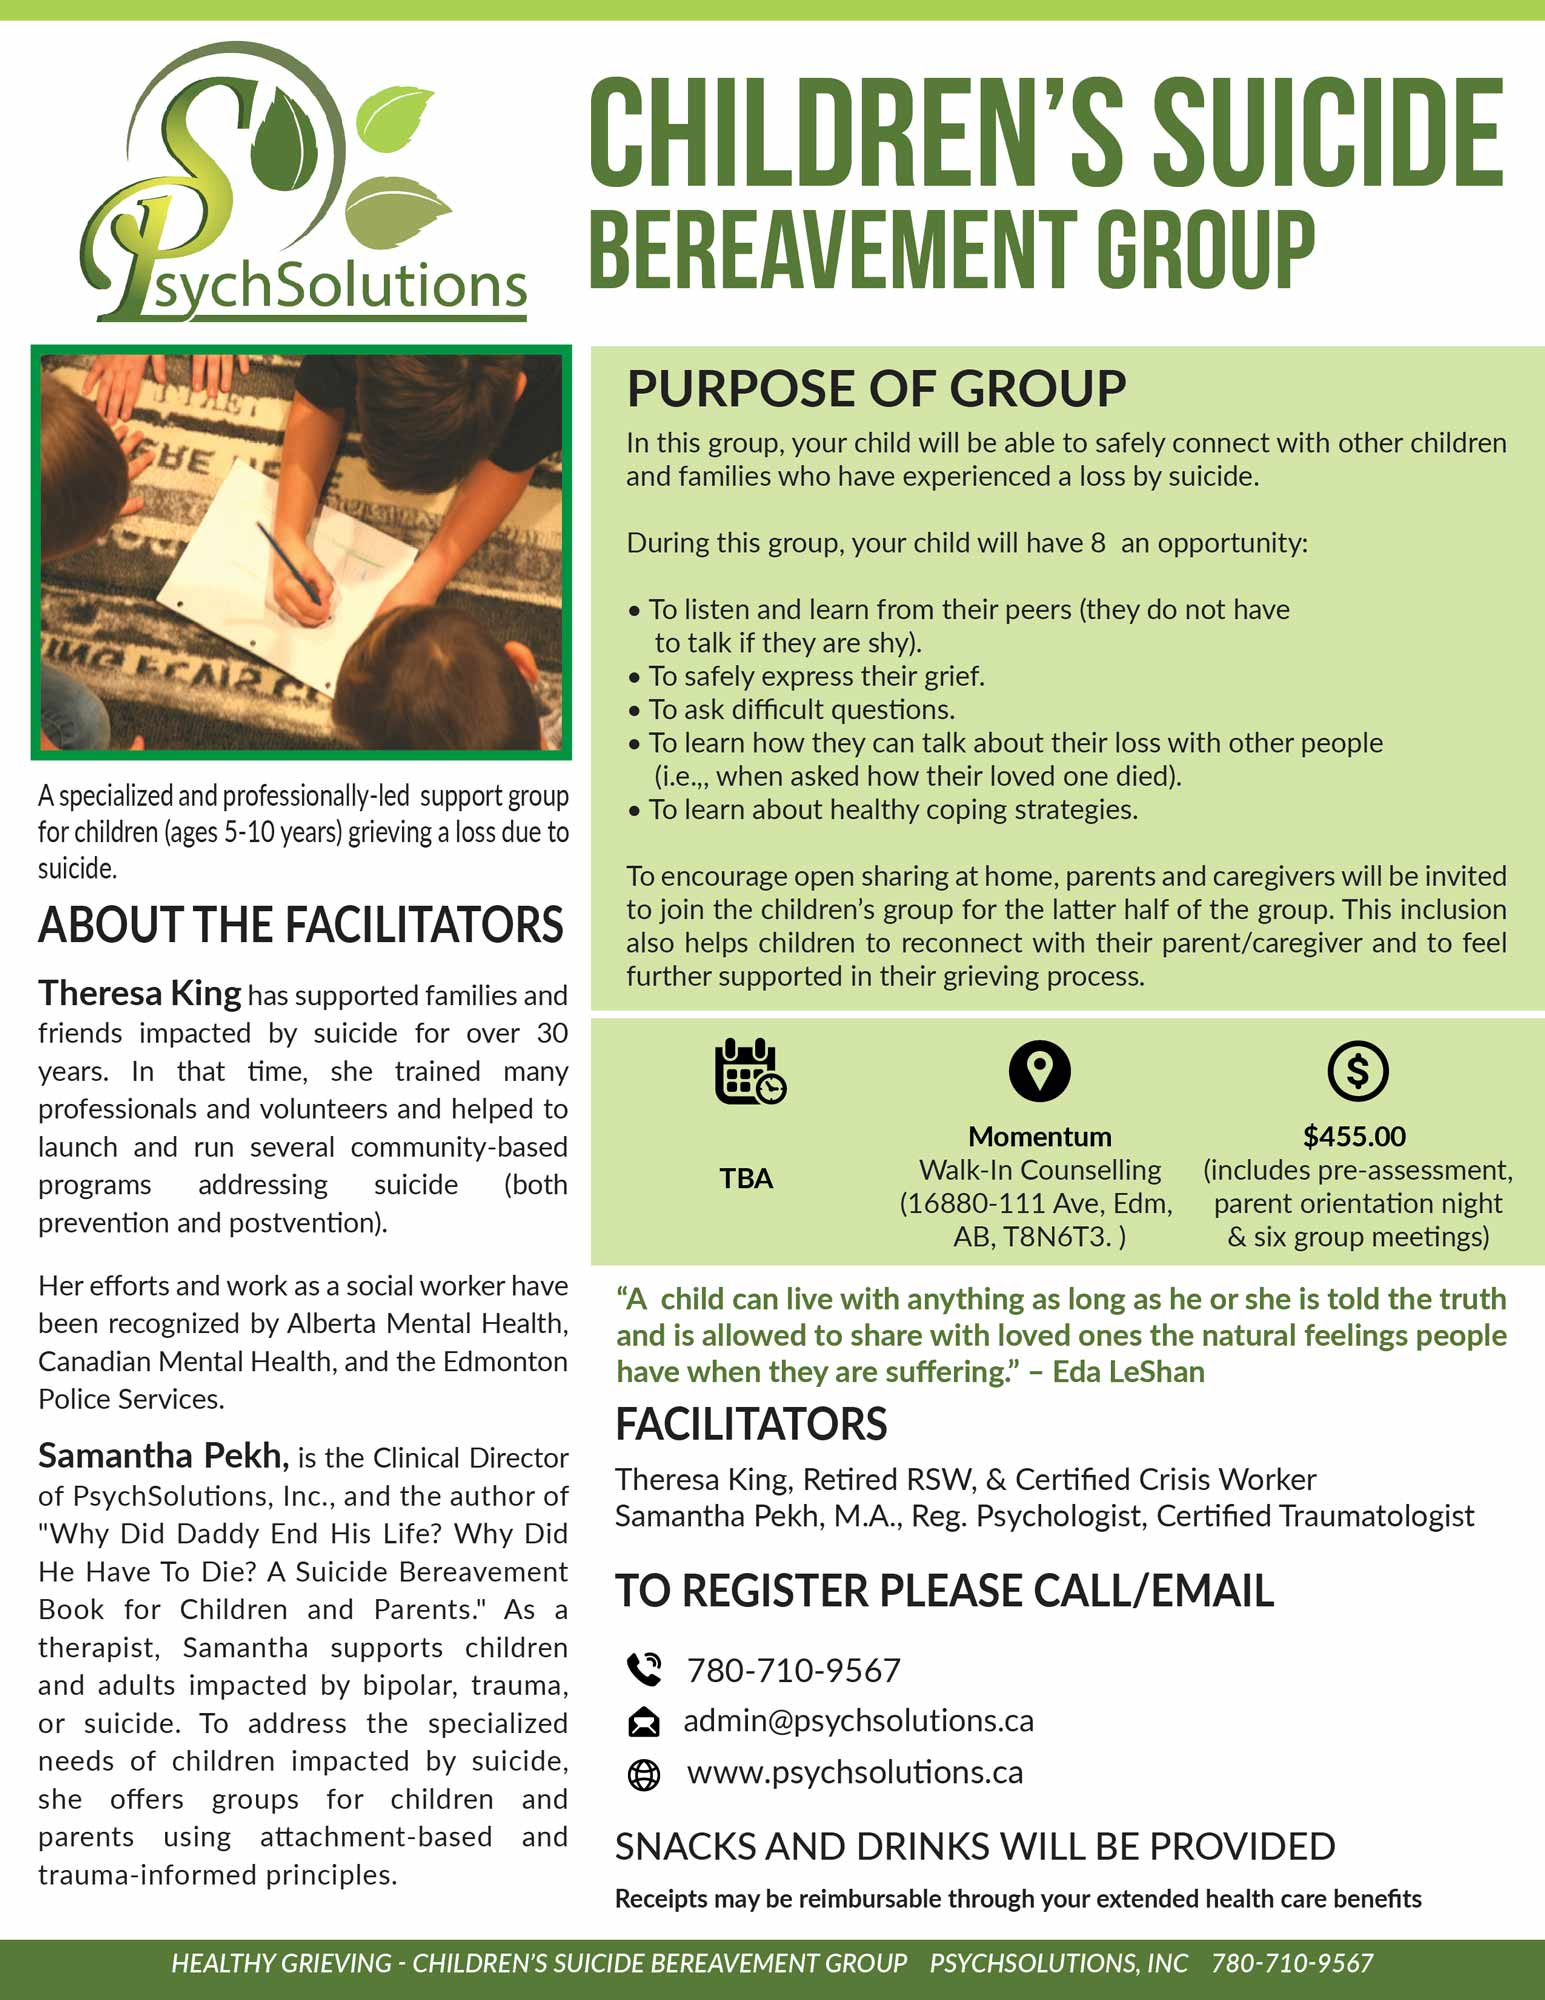 psychsolutions-edmonton-childrens-suicide-bereavement-group